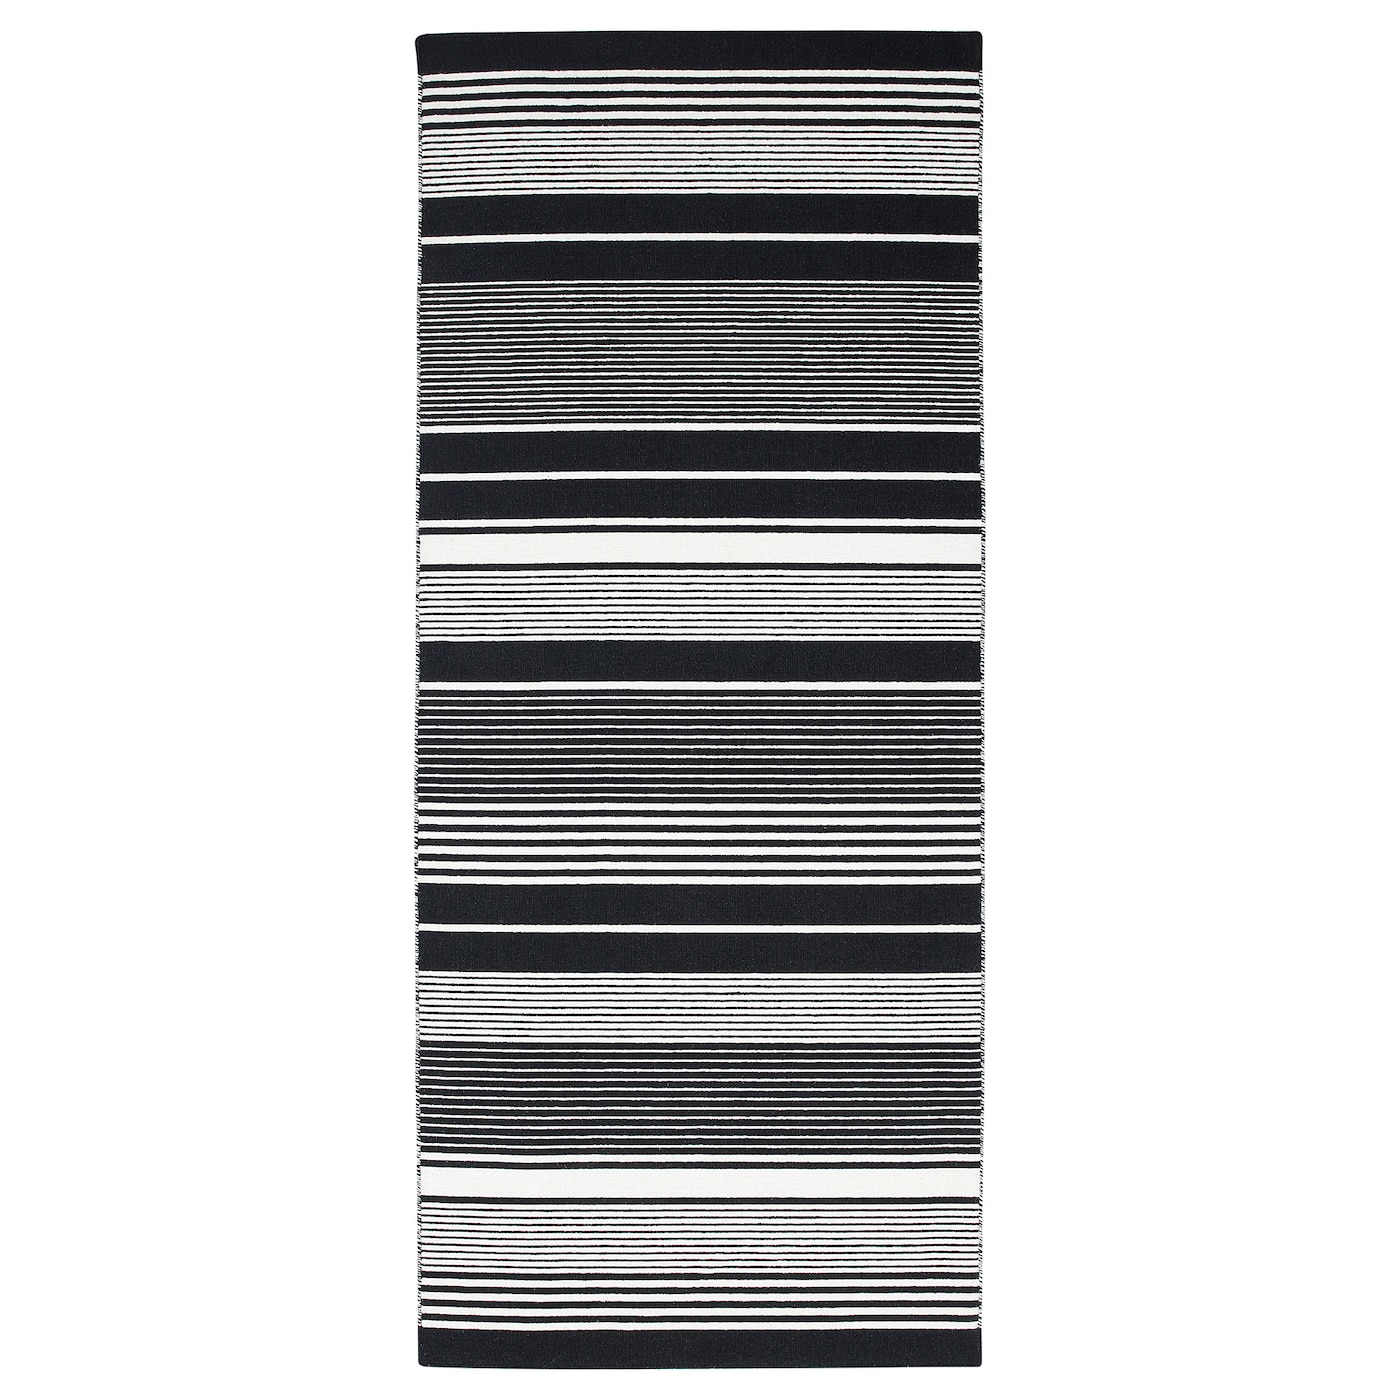 Ikea VeslÖs Rug Flatwoven Easy To Vacuum Thanks Its Flat Surface